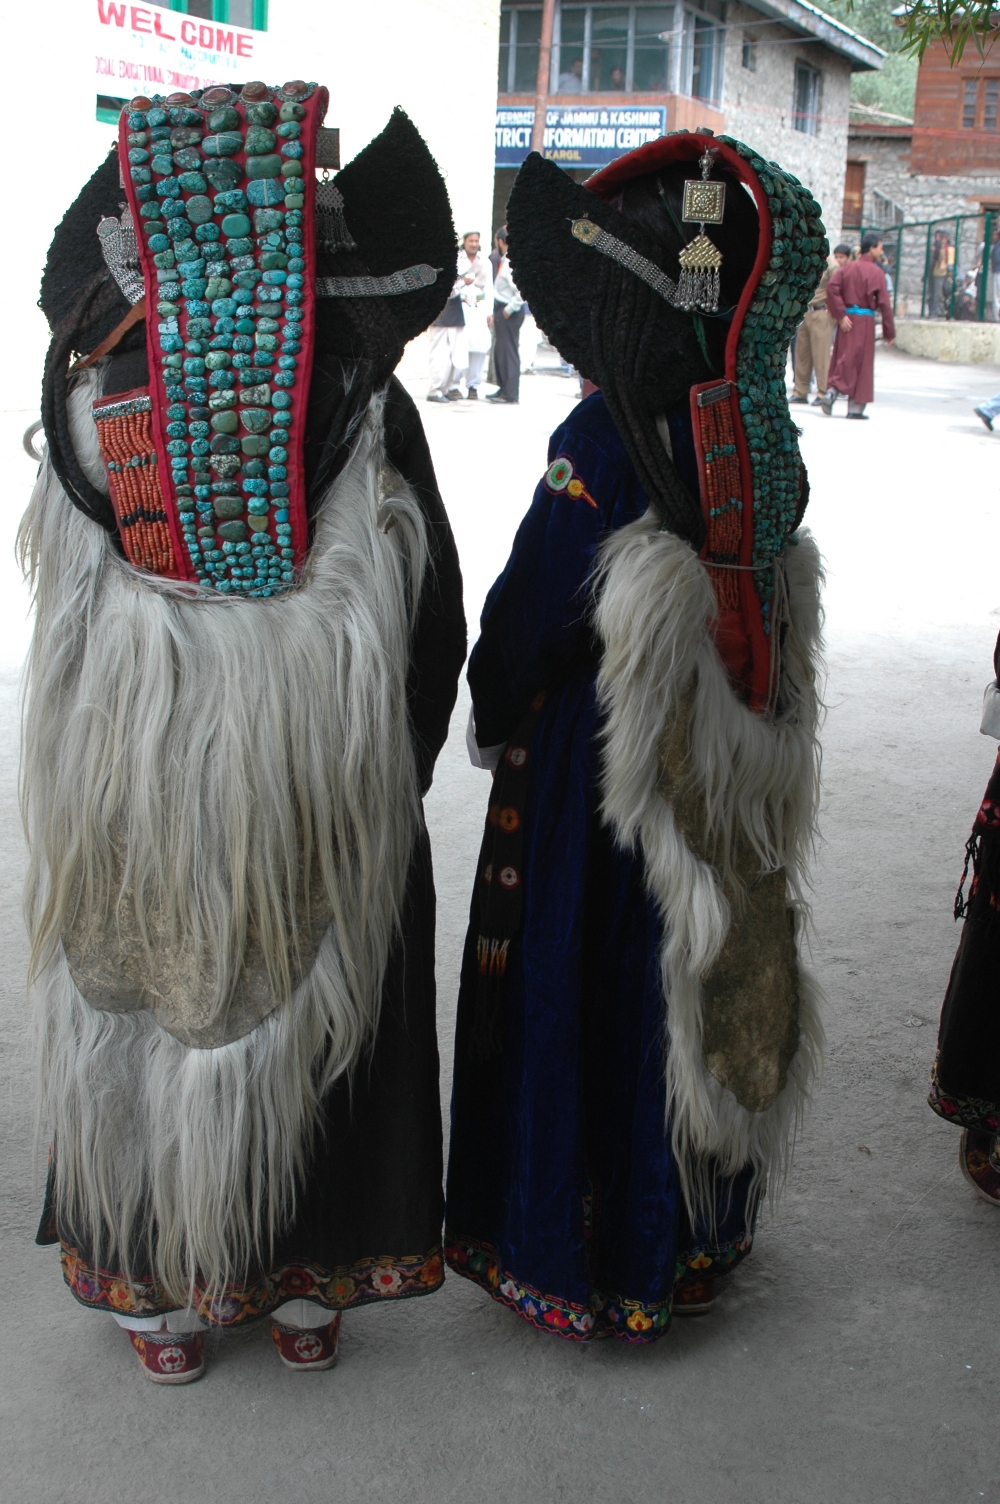 At a celebration in Kargil, two women wearing their perags (turquoise-studded headdress) along with capes made from goatskin (slog-pa) over their robes. The edges of their robes have a piping of hand-embroidered floral motifs, common in the region (Photographer: Monisha Ahmed, 2005)